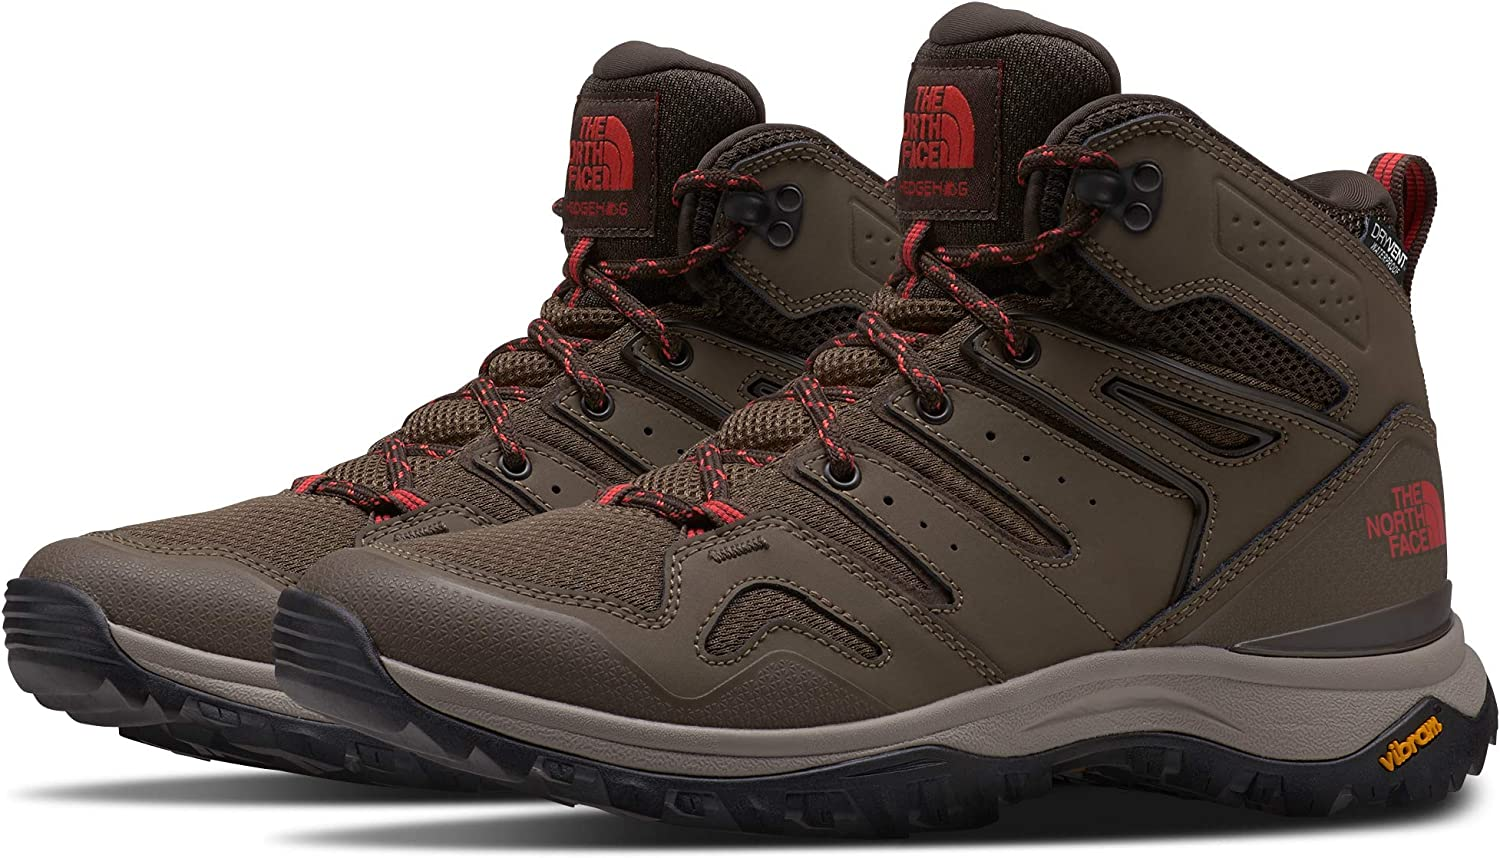 The North Face Women's Hedgehog Fastpack II Mid Top Waterproof Hiking Shoes